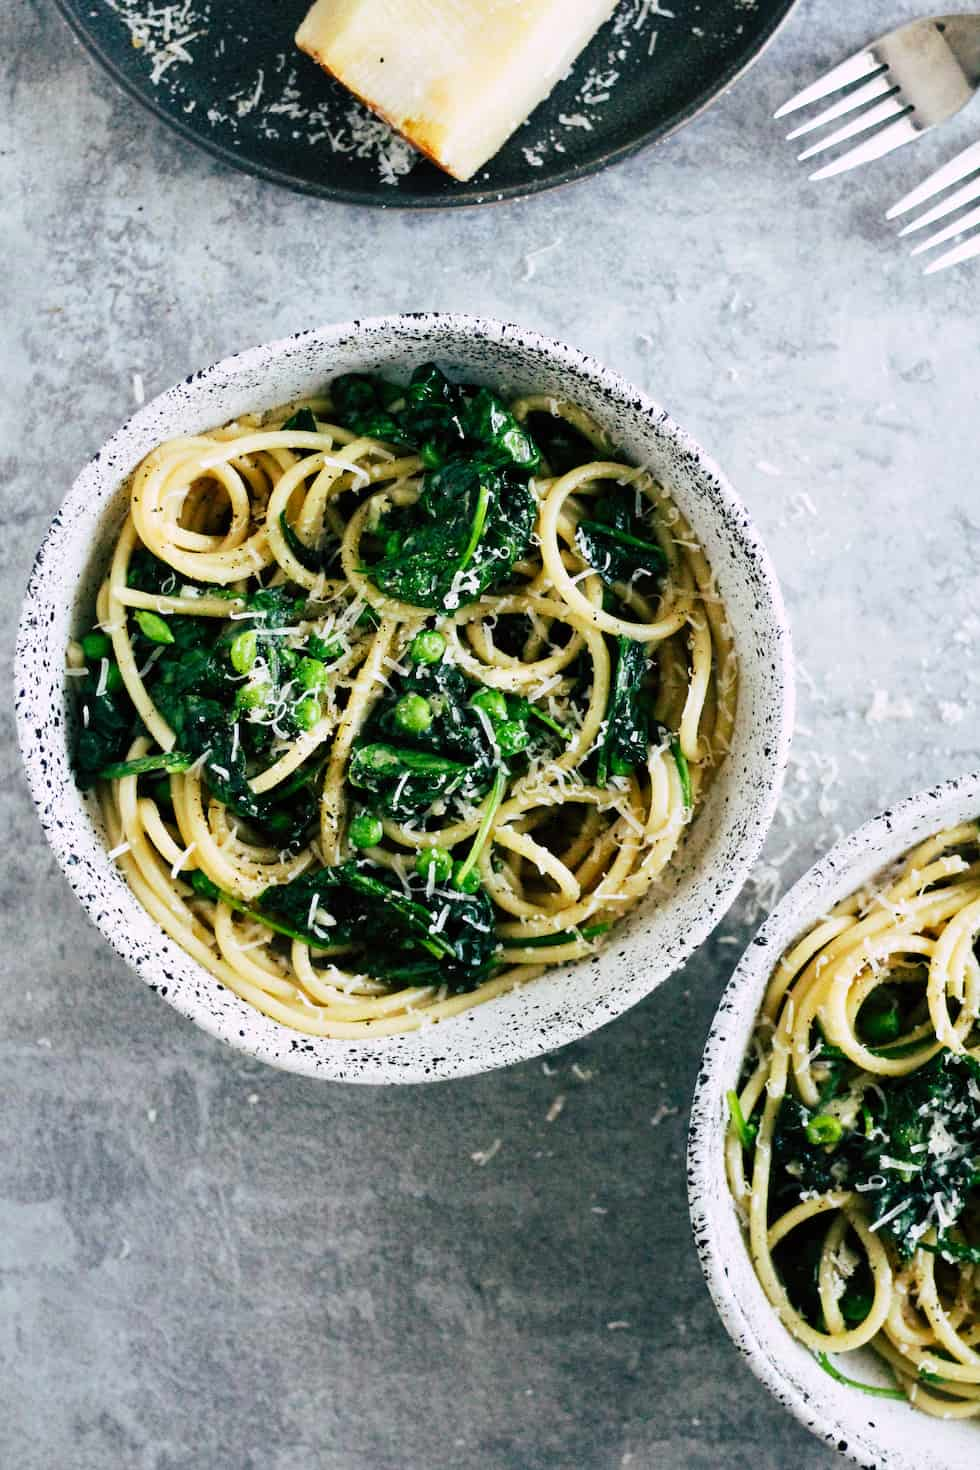 Pasta with spinach and peas in ceramic bowl with wedge of cheese.